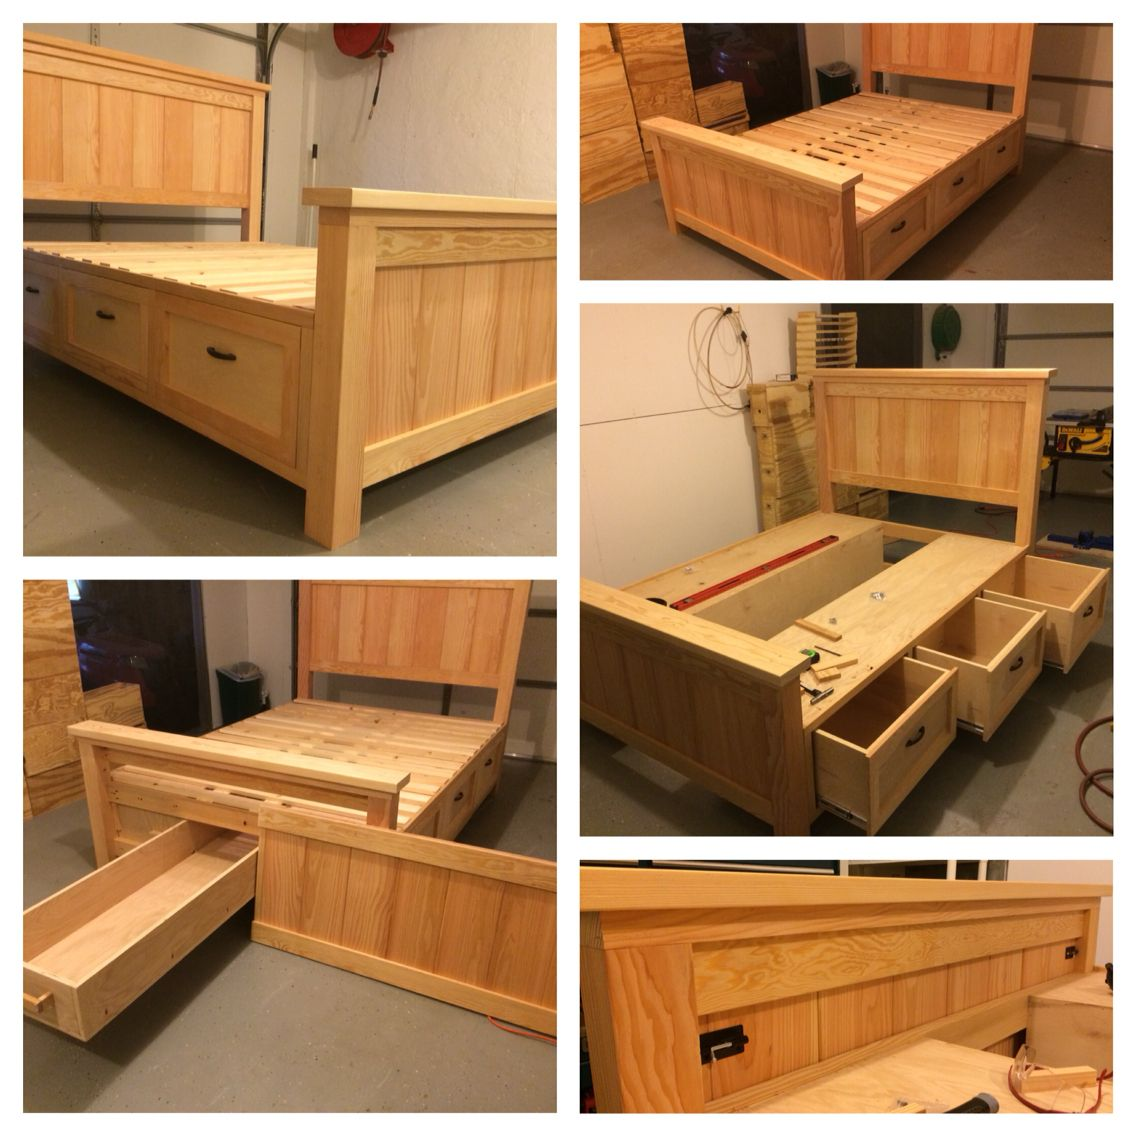 Bed Frames With Storage Drawers i just finished this build. it is a queen farmhouse storage bed